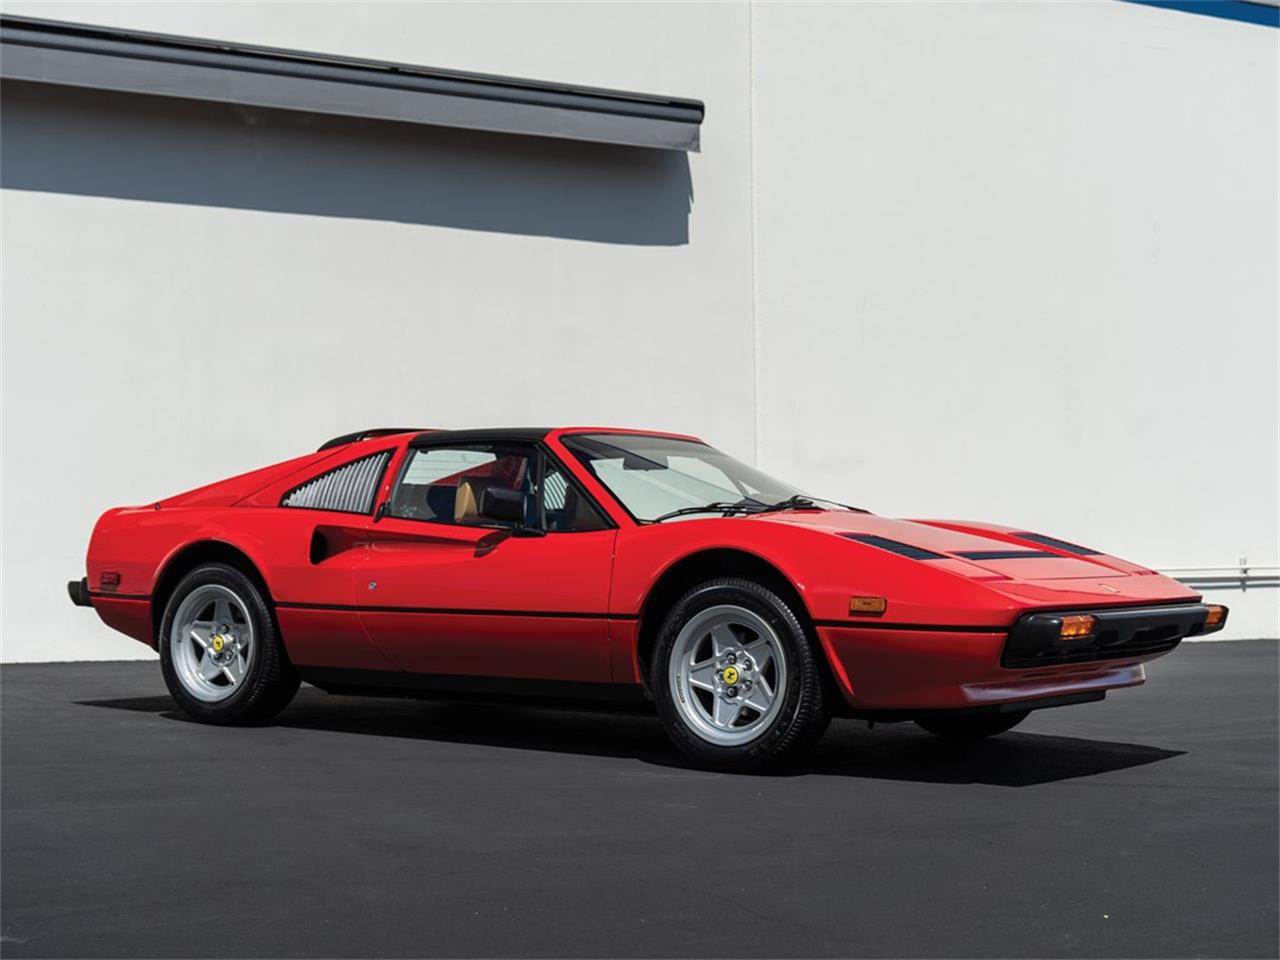 Large Picture of '85 308 GTS located in California Auction Vehicle Offered by RM Sotheby's - QE4M